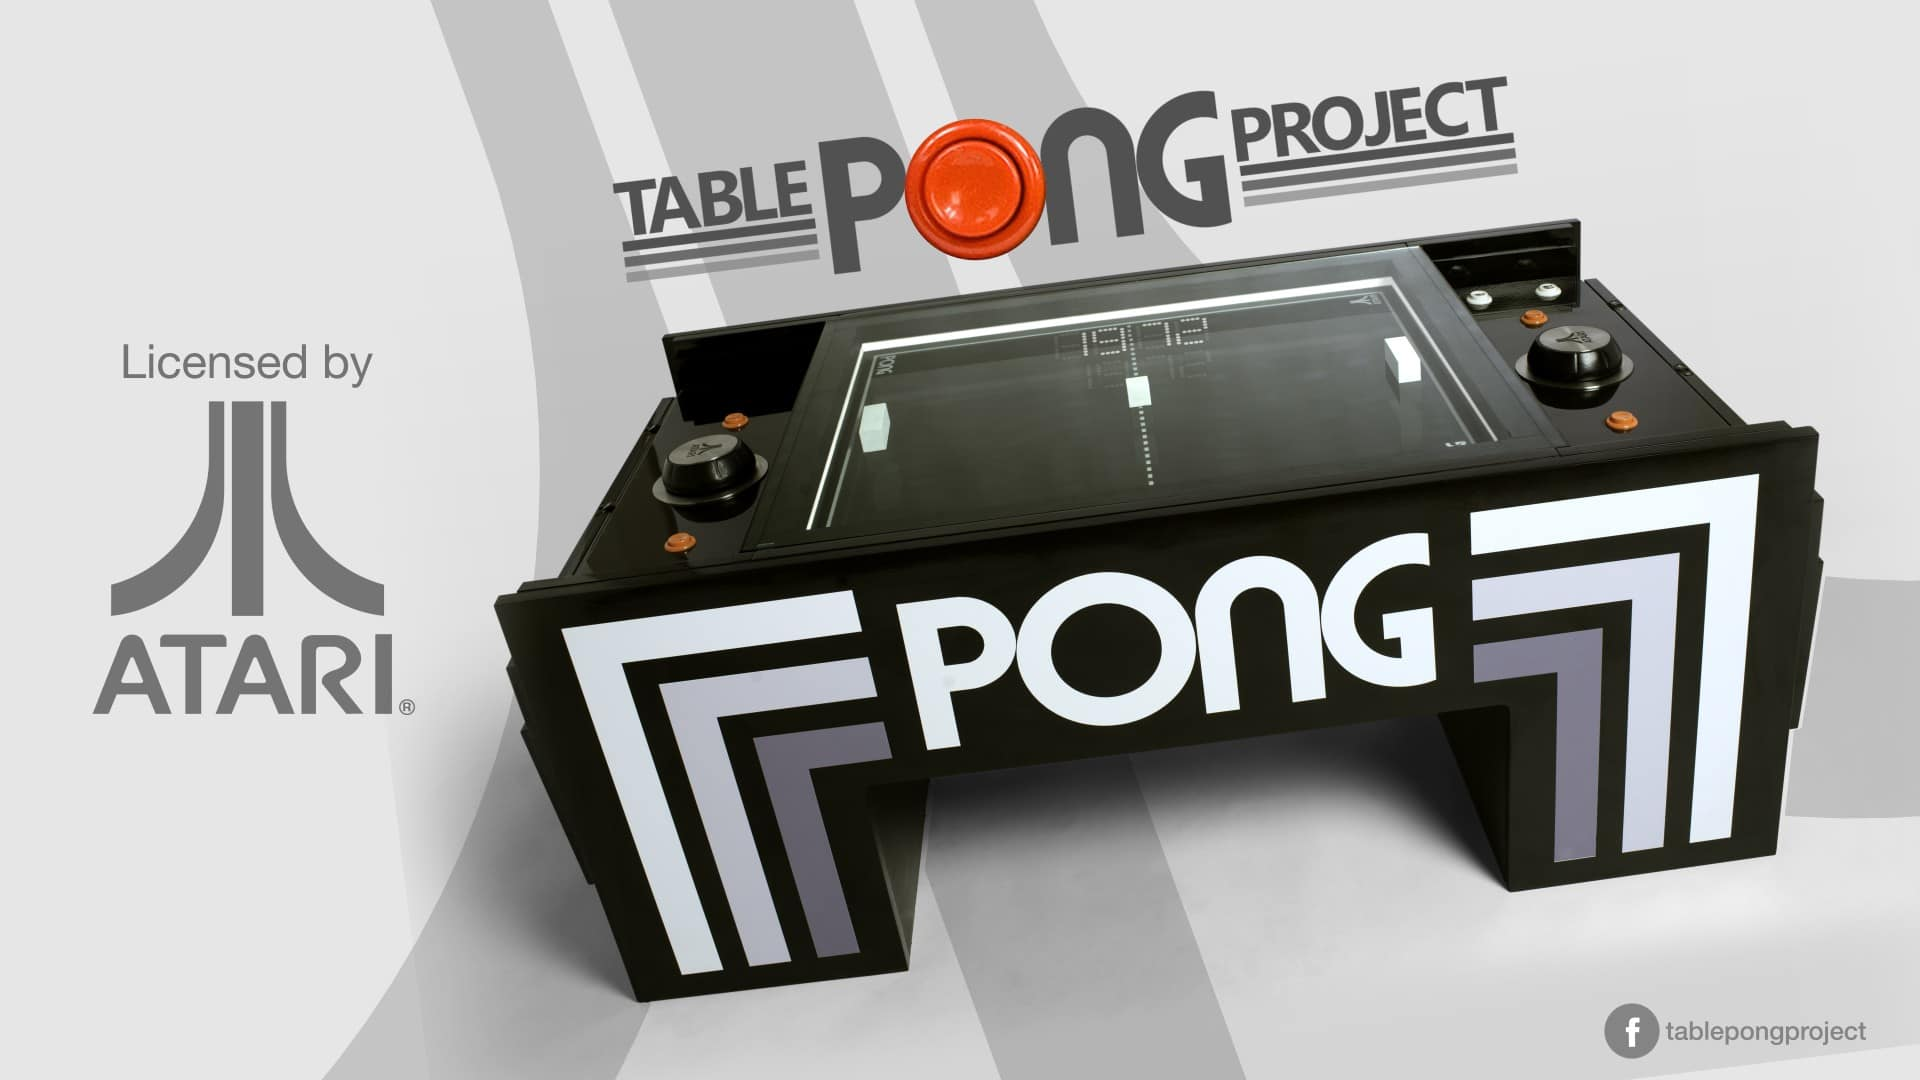 Genial dieser Tisch! (Foto: Table Pong Project)